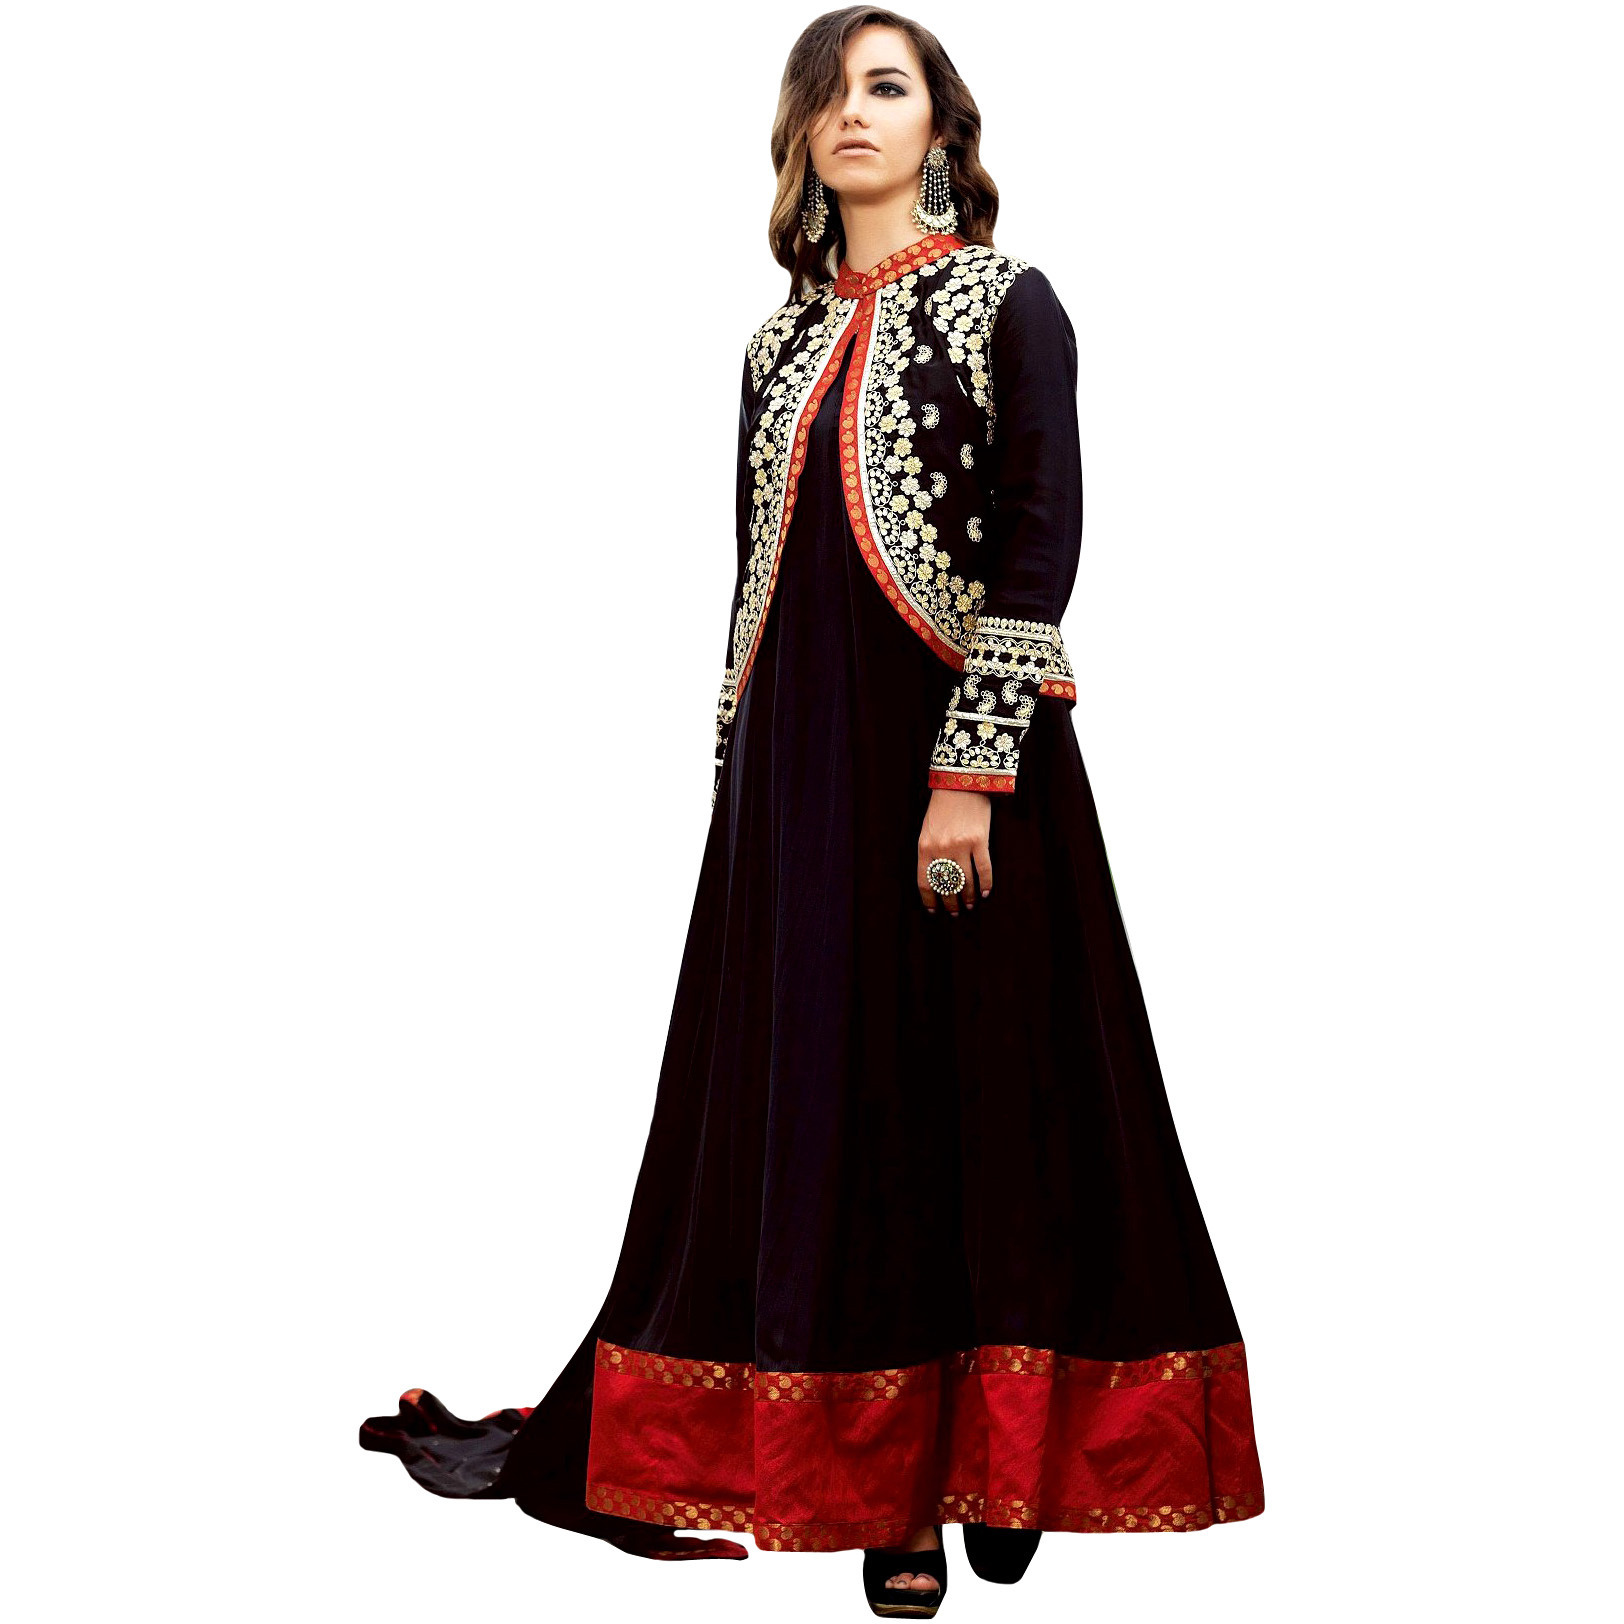 Phantom-Black Plain Anarkali Suit with Floral-Embroidered Bolero Jacket